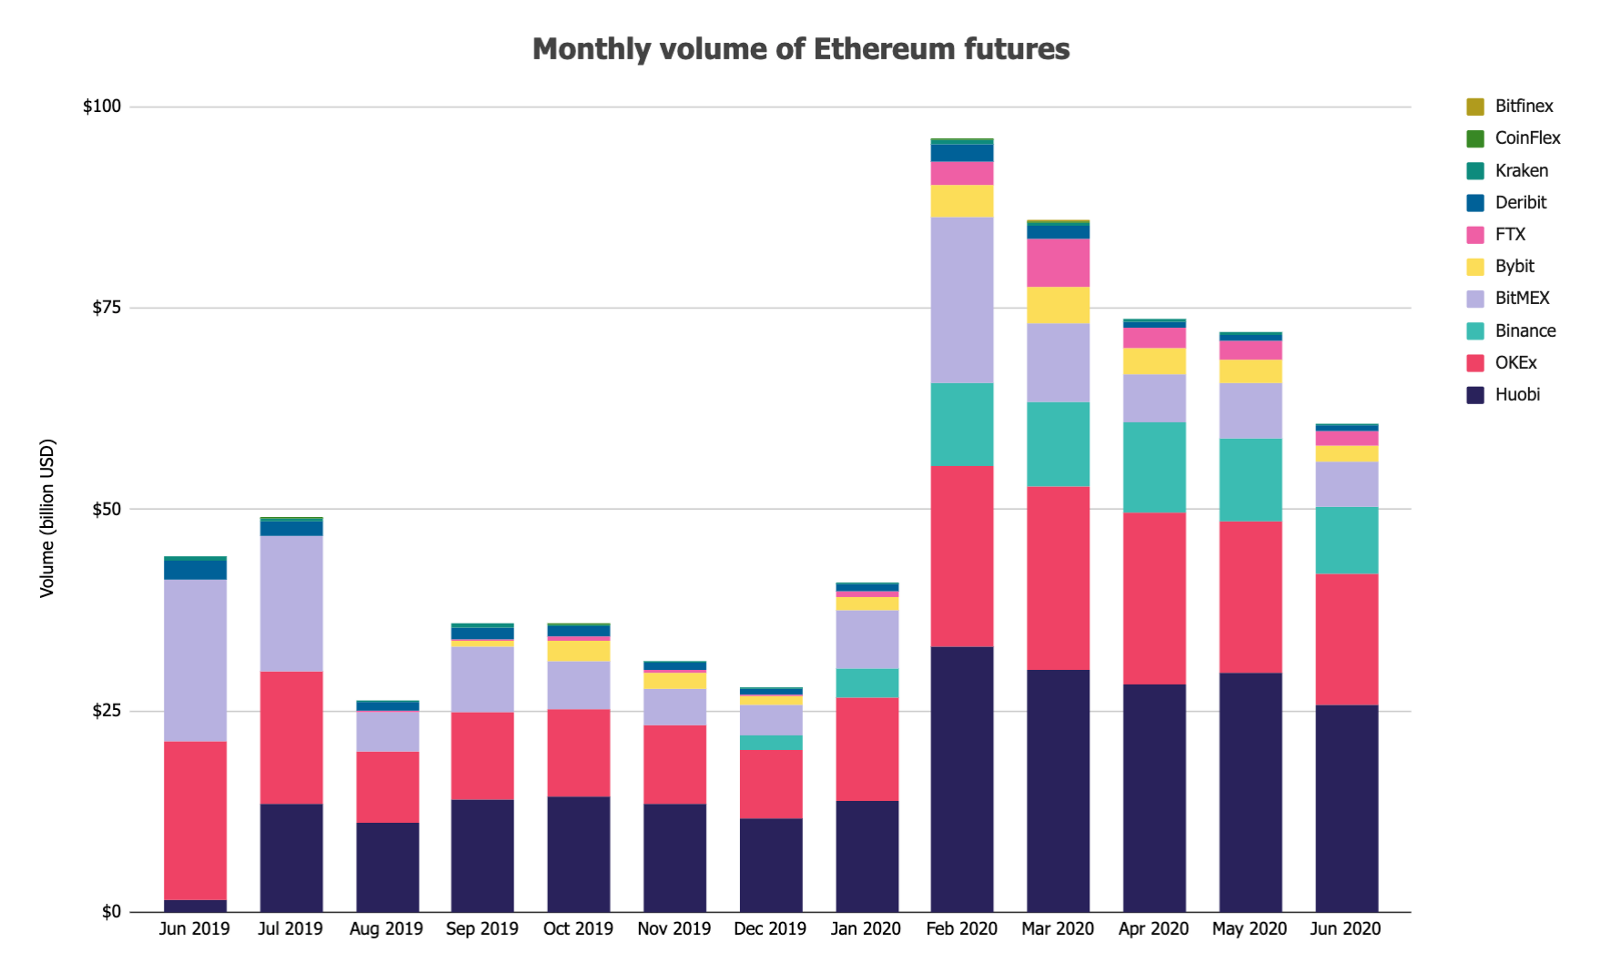 Monthly volume of ethereum futures